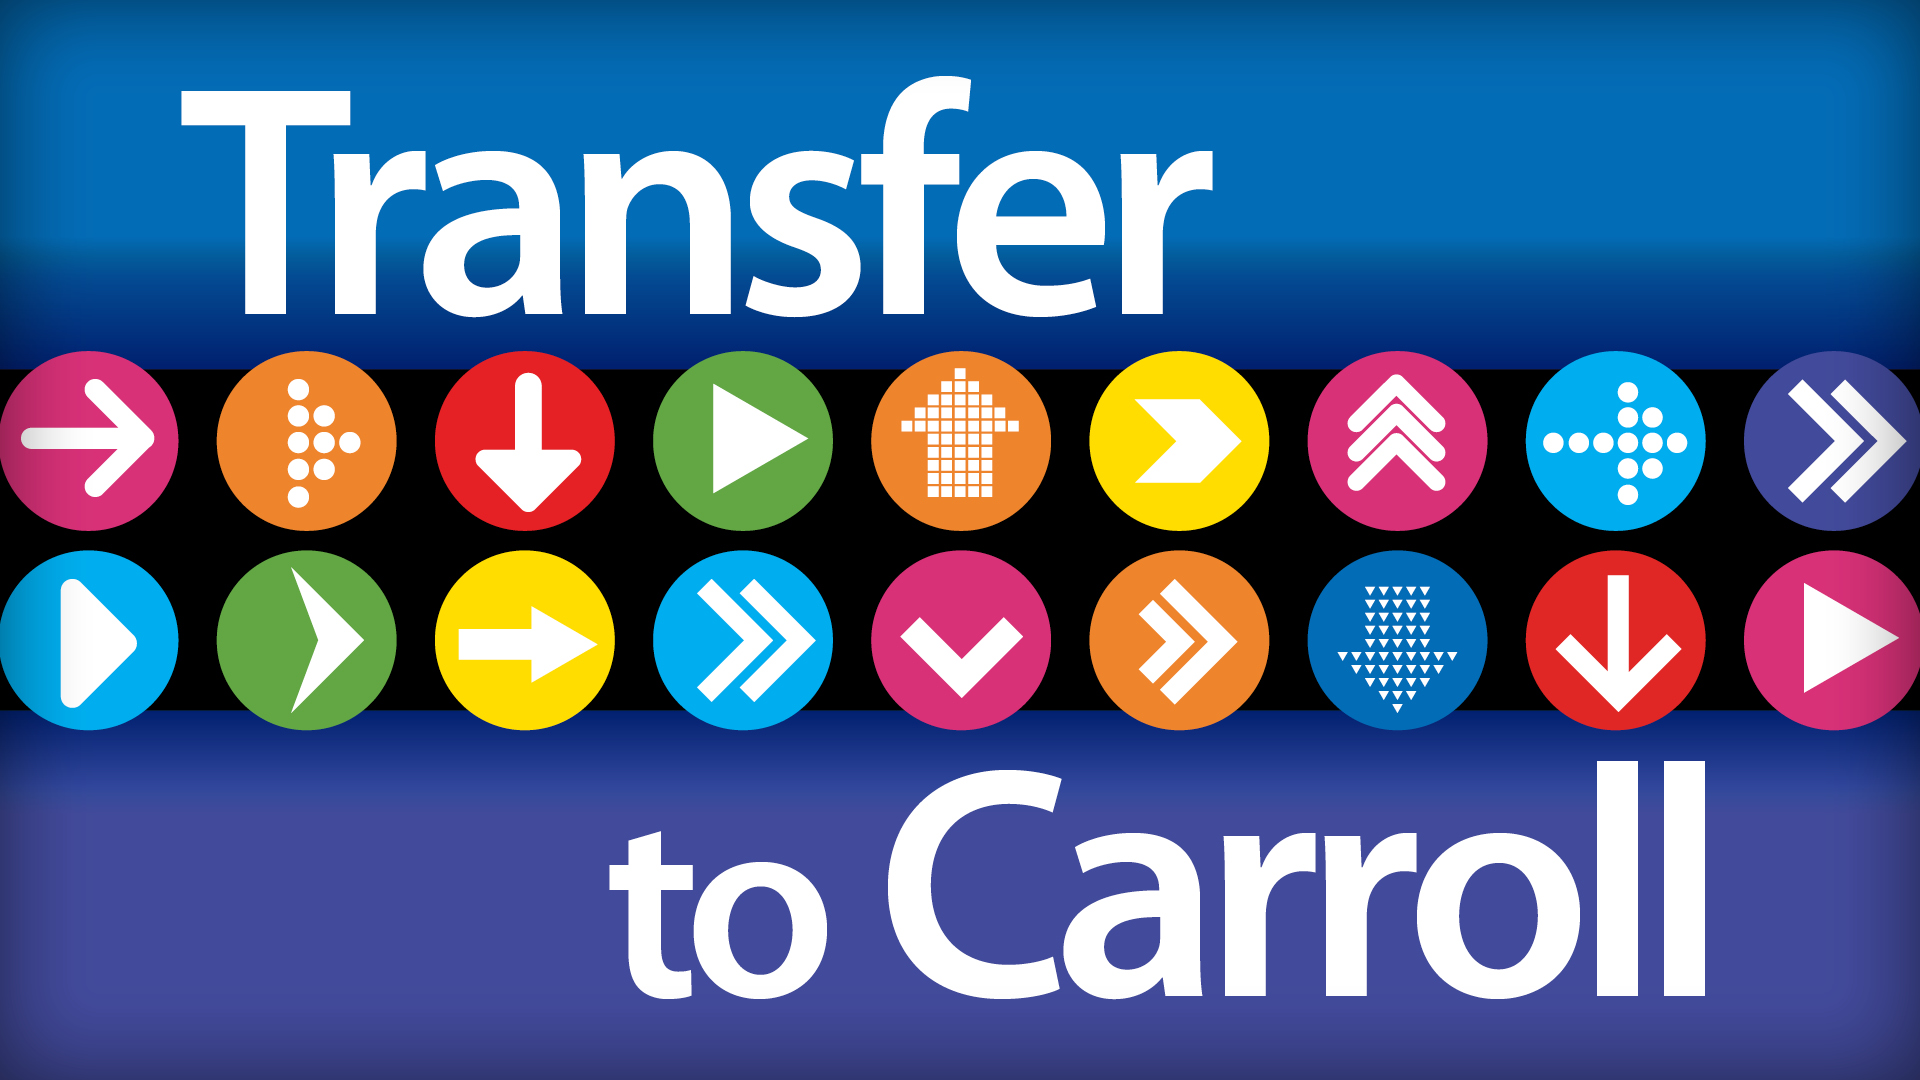 Transfer to Carroll - find out how!